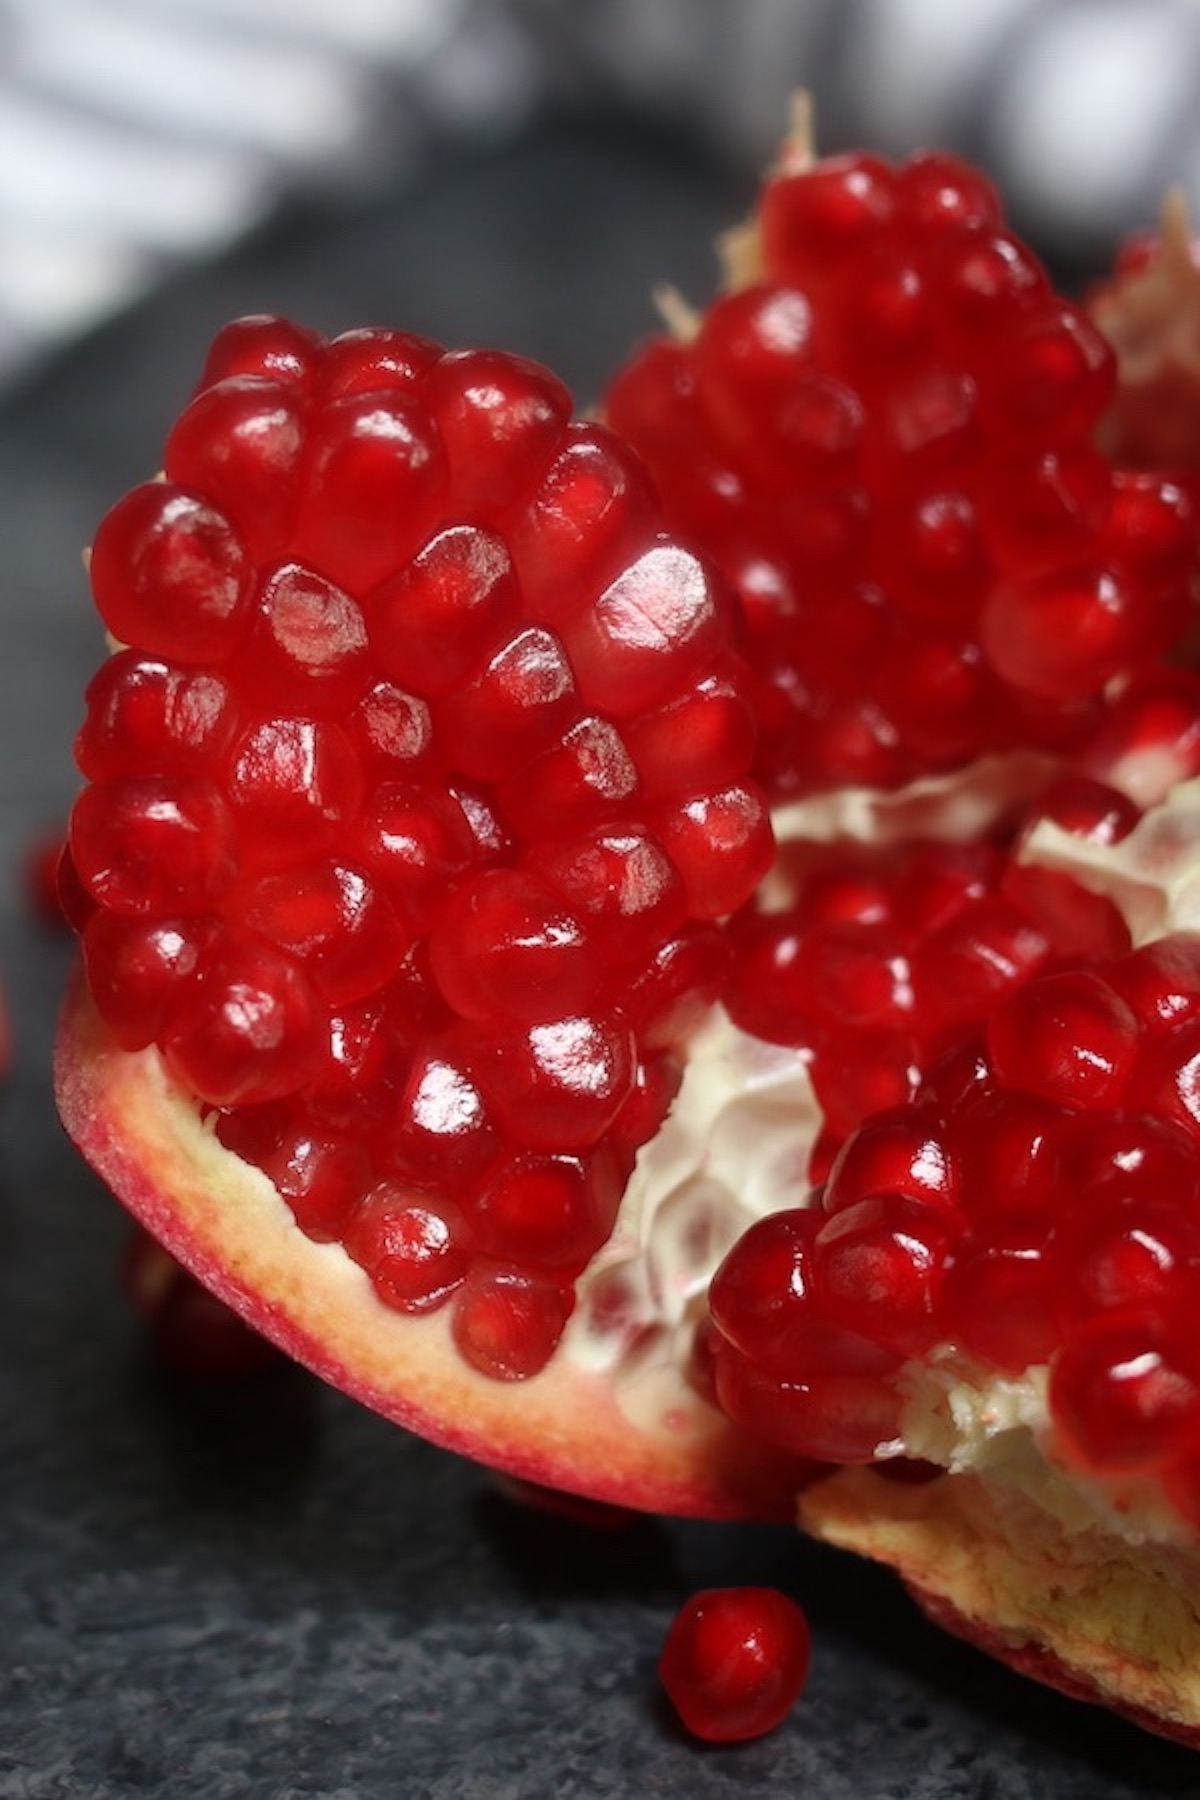 h its sweet, tart flavors, and beautiful colors. We've rounded up 12 of the Best Pomegranate Recipes for you to try this fall, from juices to salads, smoothies, and more.